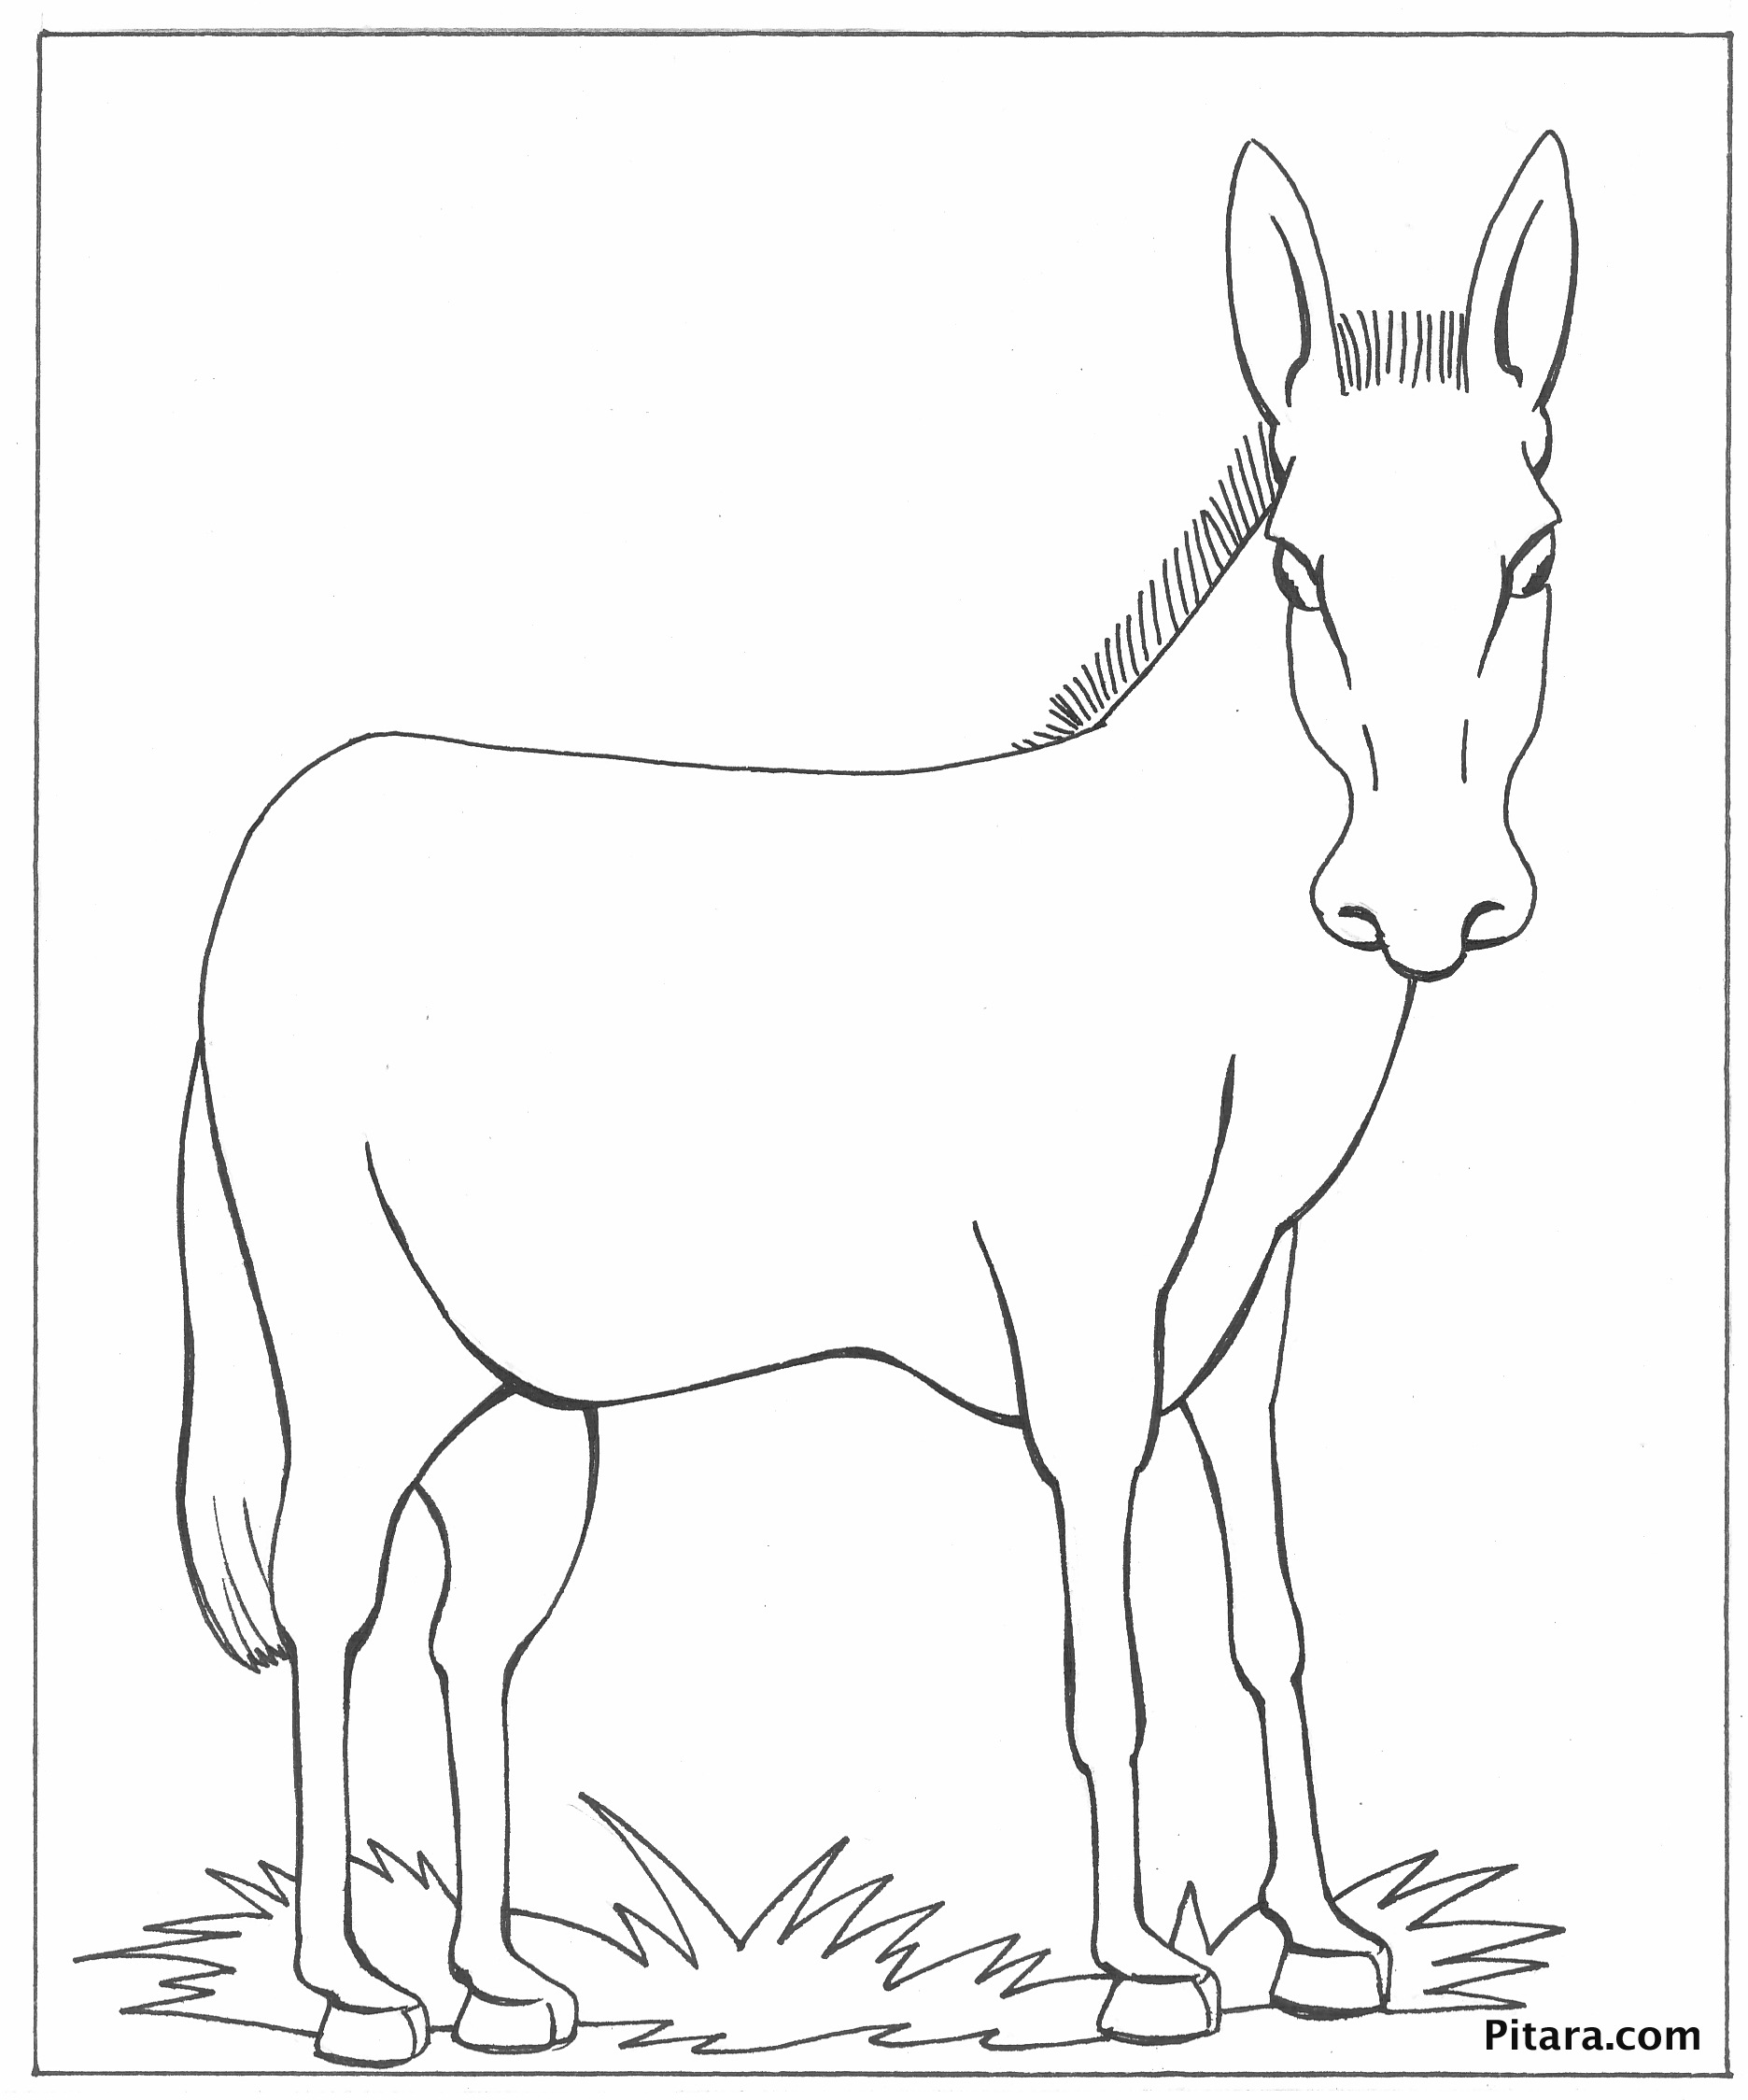 donkey colouring pages donkey coloring page pitara kids network colouring donkey pages